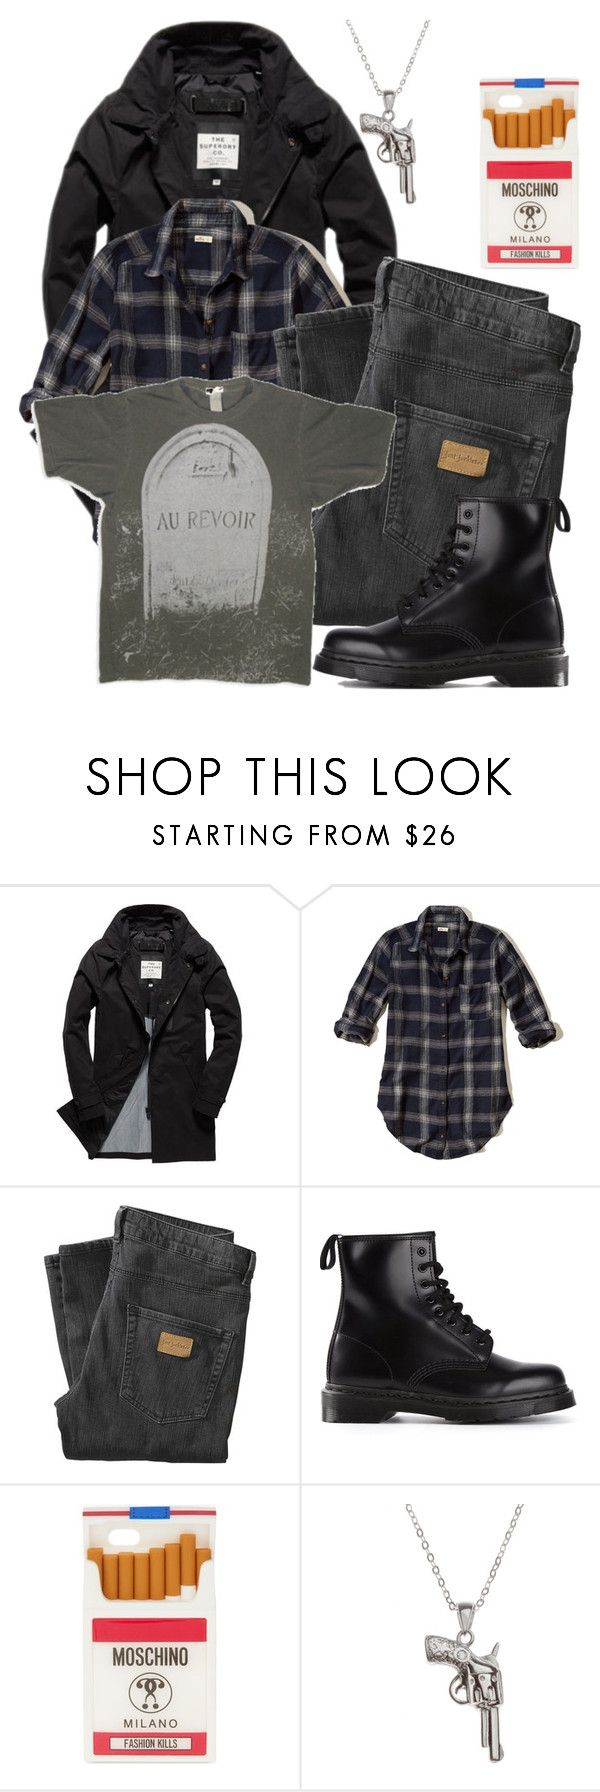 """Jason ""JD"" Dean"" by yorkington ❤ liked on Polyvore featuring Superdry, Hollister Co., Just Junkies, Dr. Martens, Moschino, La Preciosa, men's fashion and menswear"